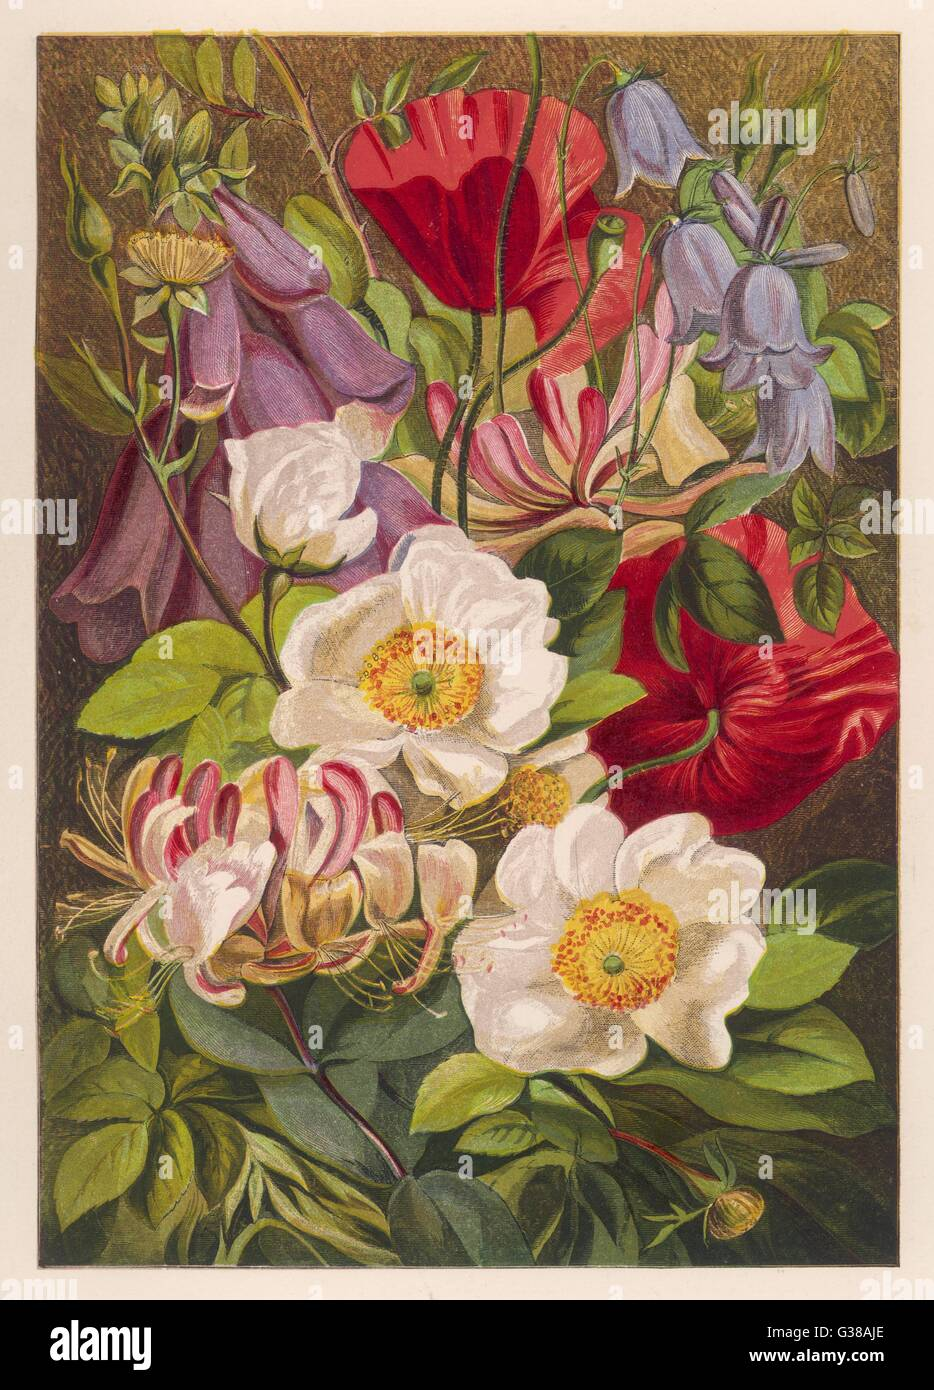 Flowers of July and August          Date: 1863 - Stock Image